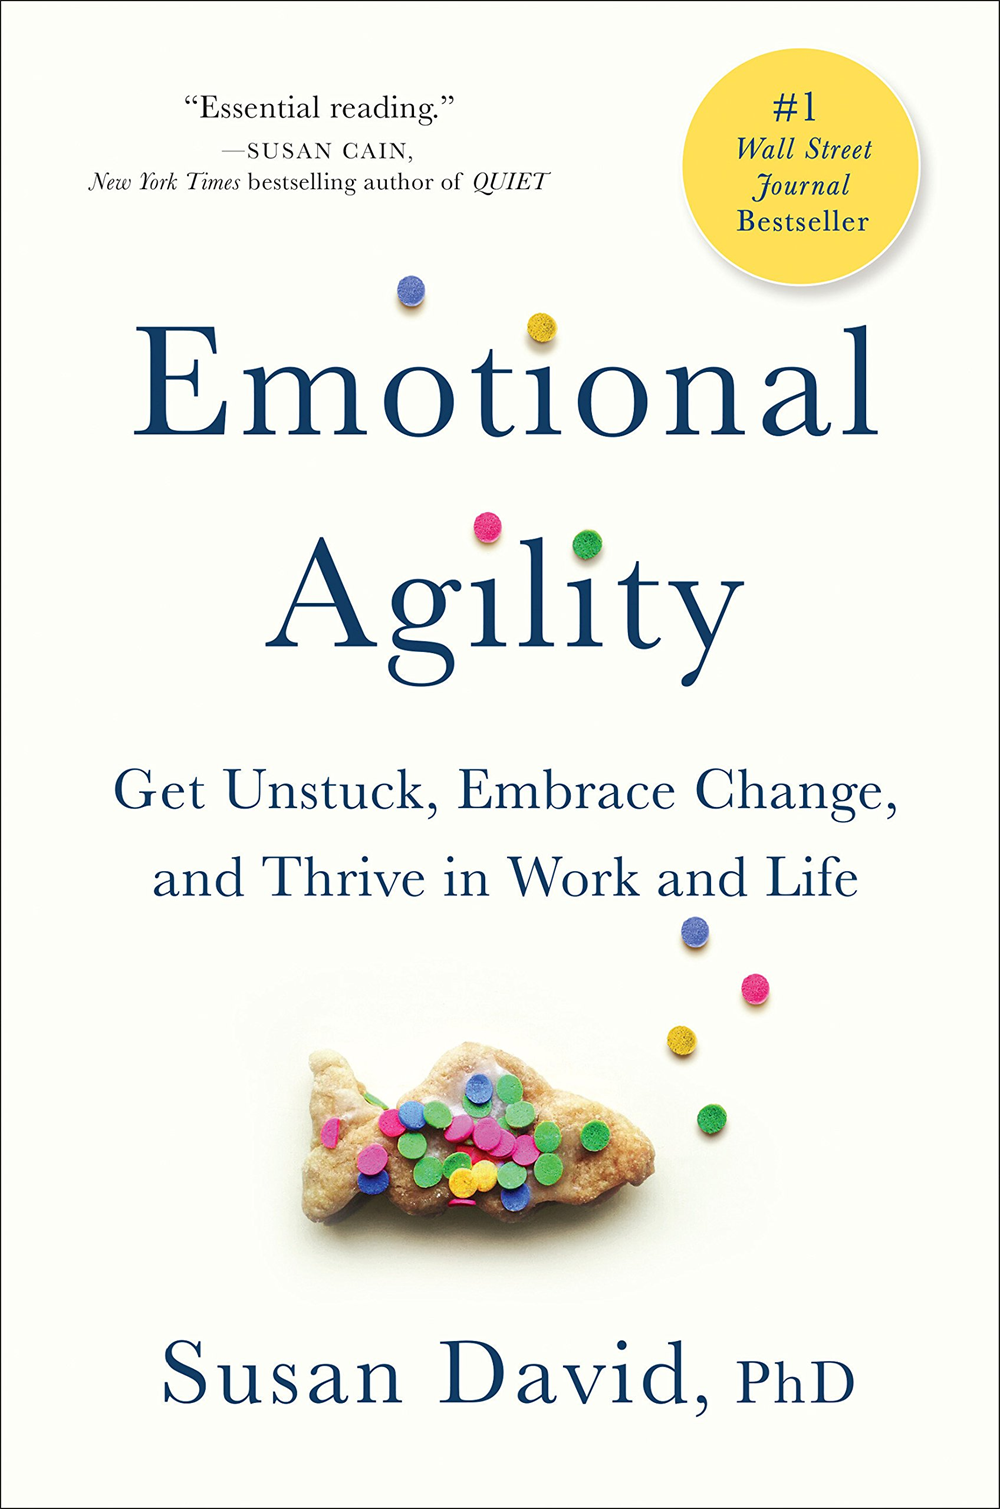 Emotional Agility Get Unstuck, Embrace Change, and Thrive in Work and Life